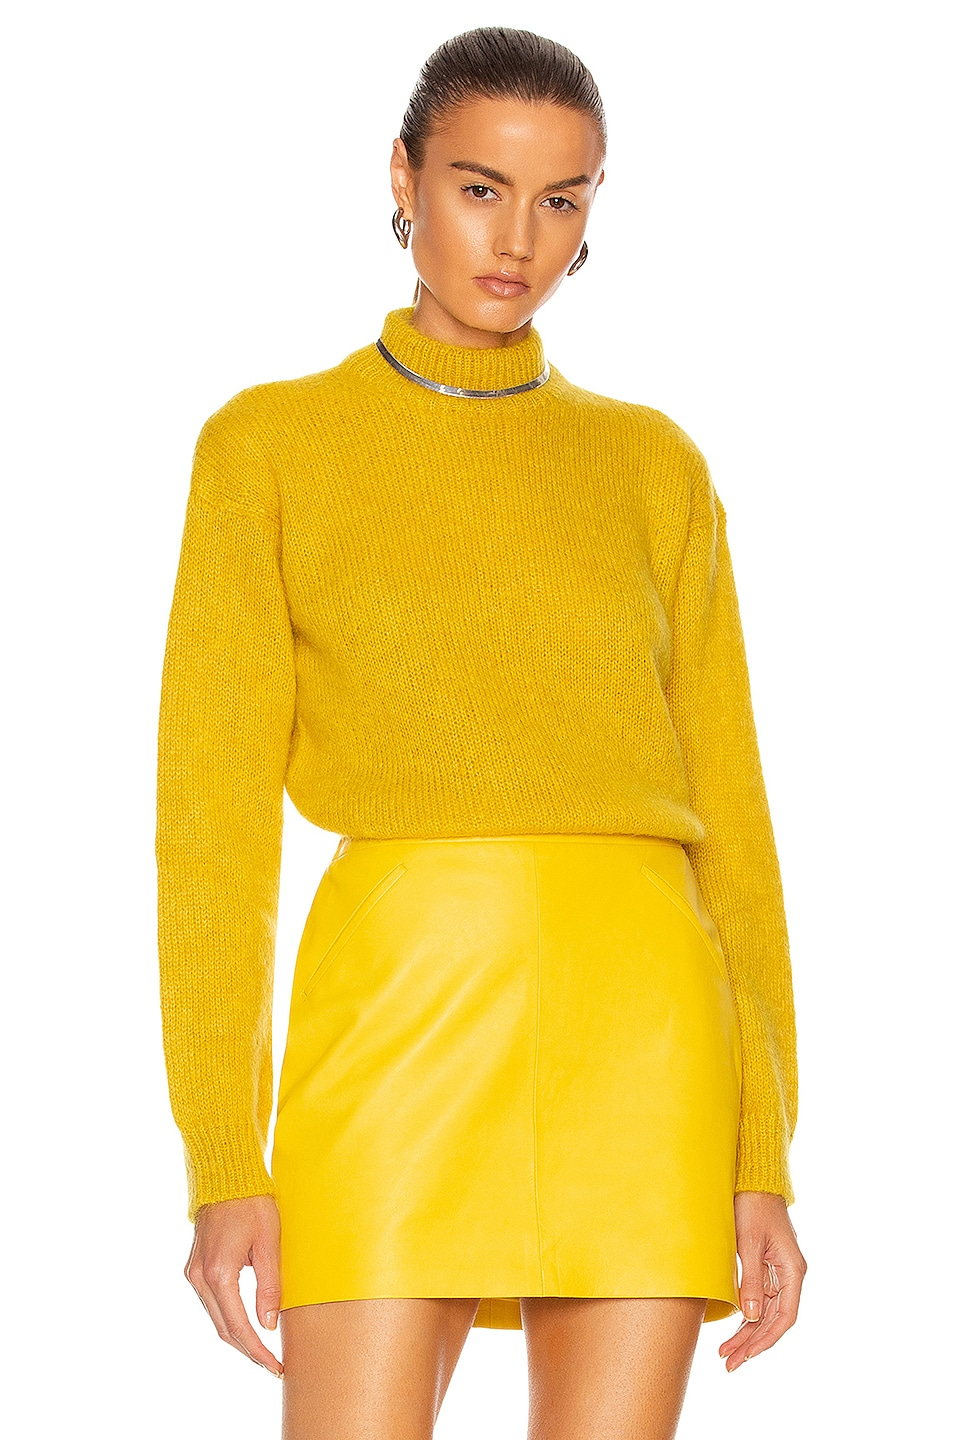 Image 1 of TOM FORD Brushed Mohair Mock Neck Sweater in Mustard